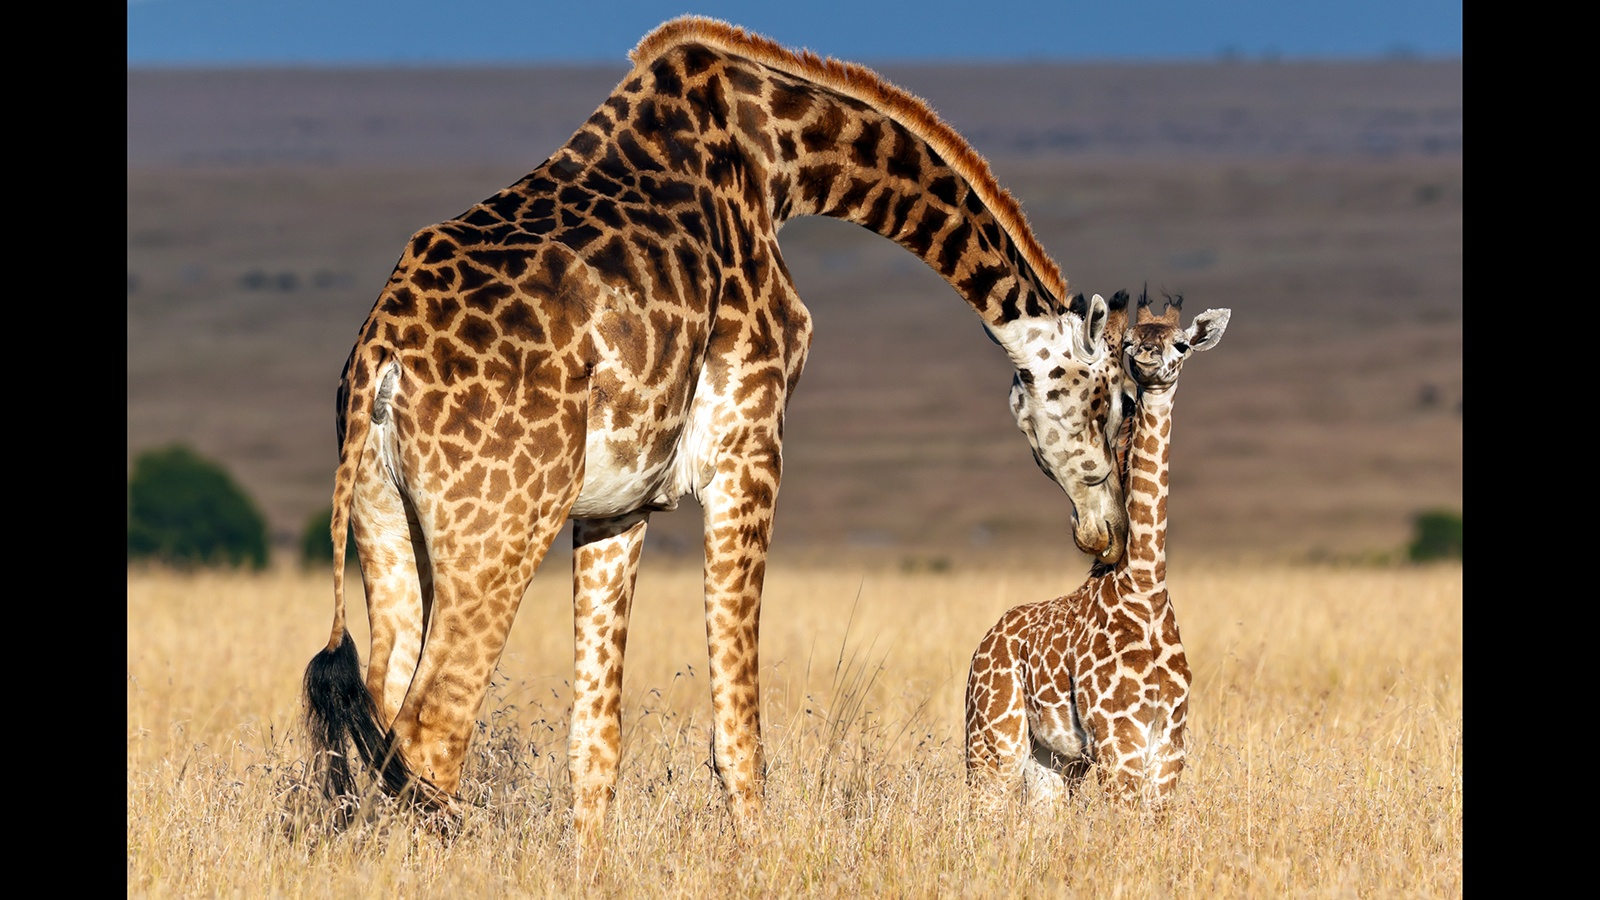 15 Interesting Facts About Giraffes You May Have Never Known